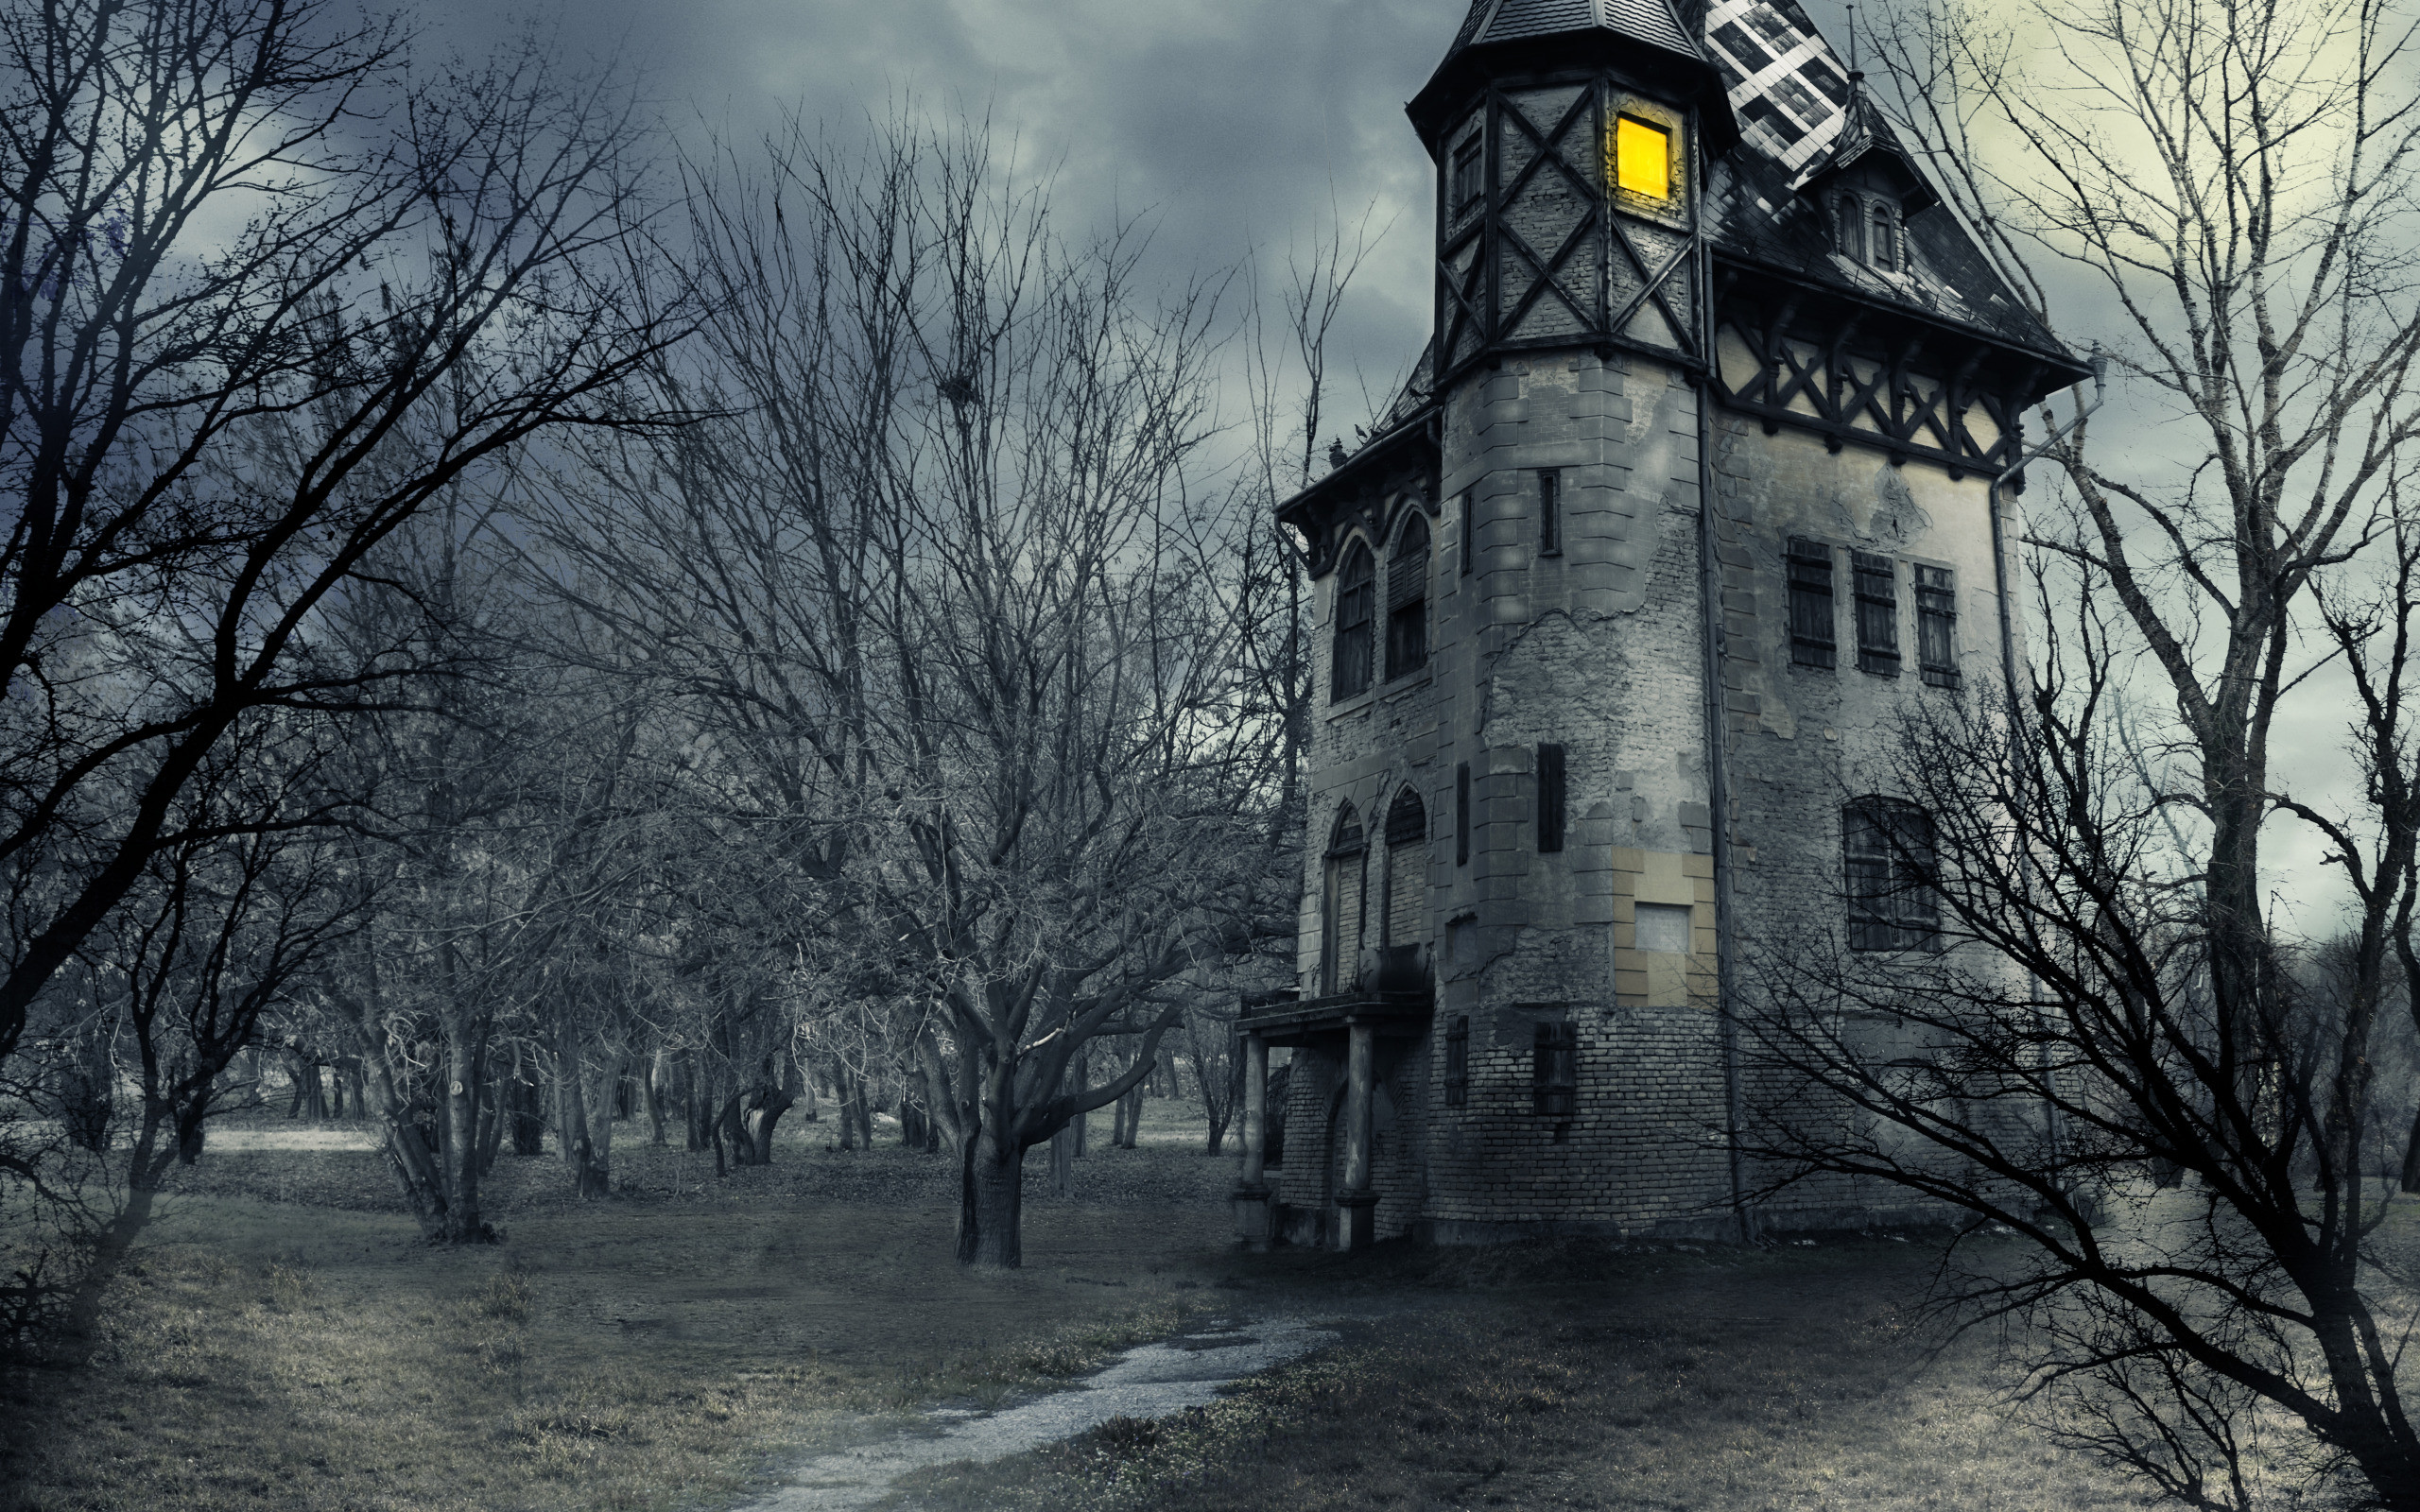 Horror Animated Wallpapers For Pc Halloween Haunted House Wallpaper 62 Images